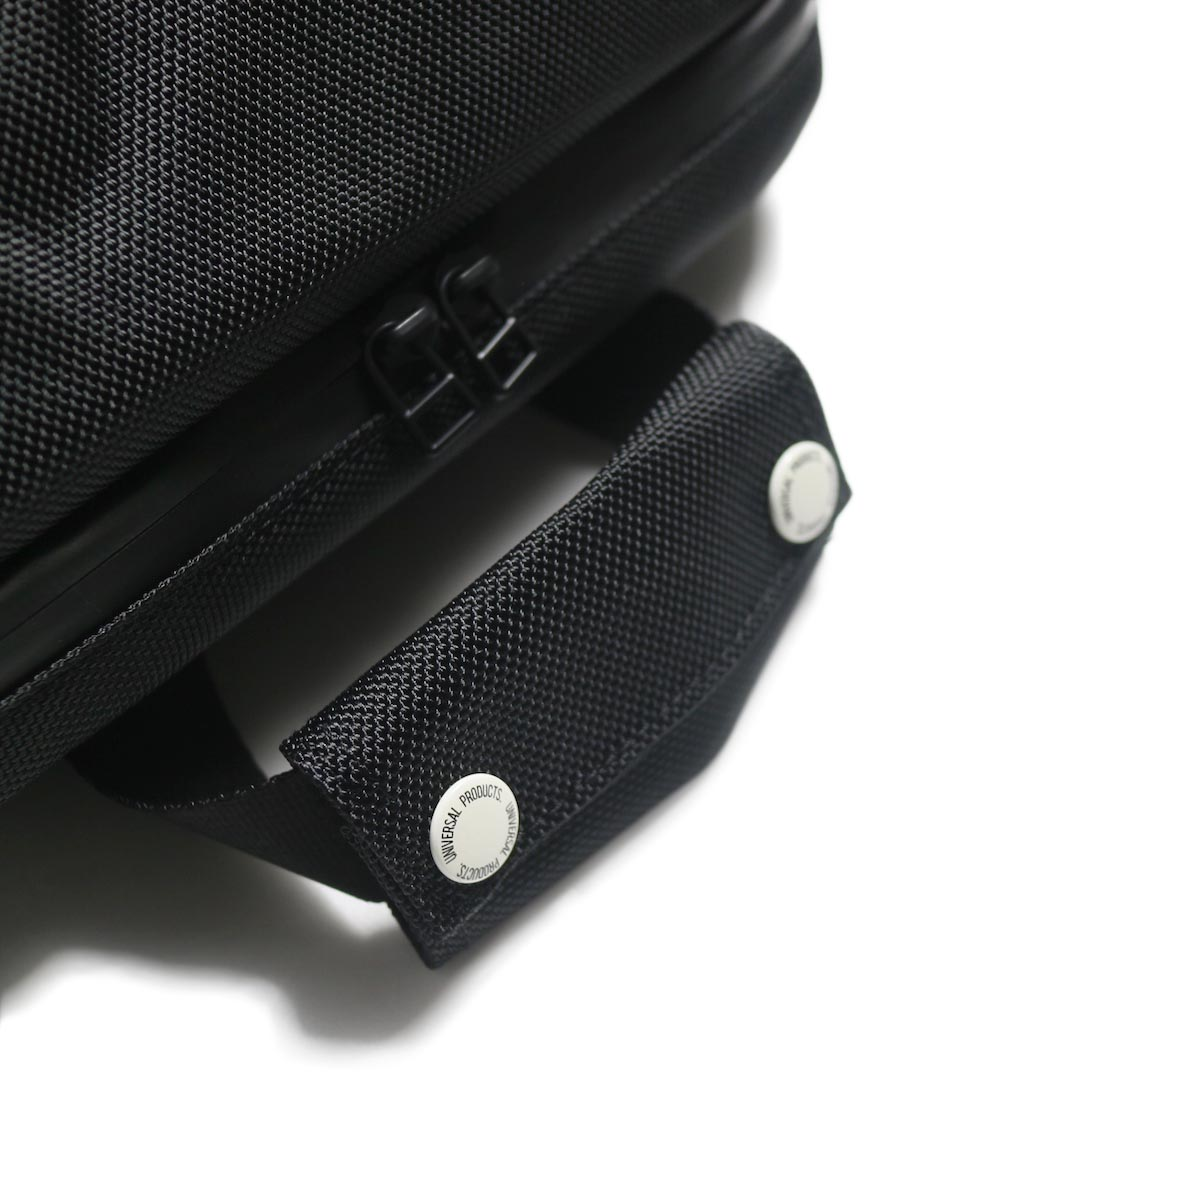 UNIVERSAL PRODUCTS / New Utility Bag -Black 持ち手